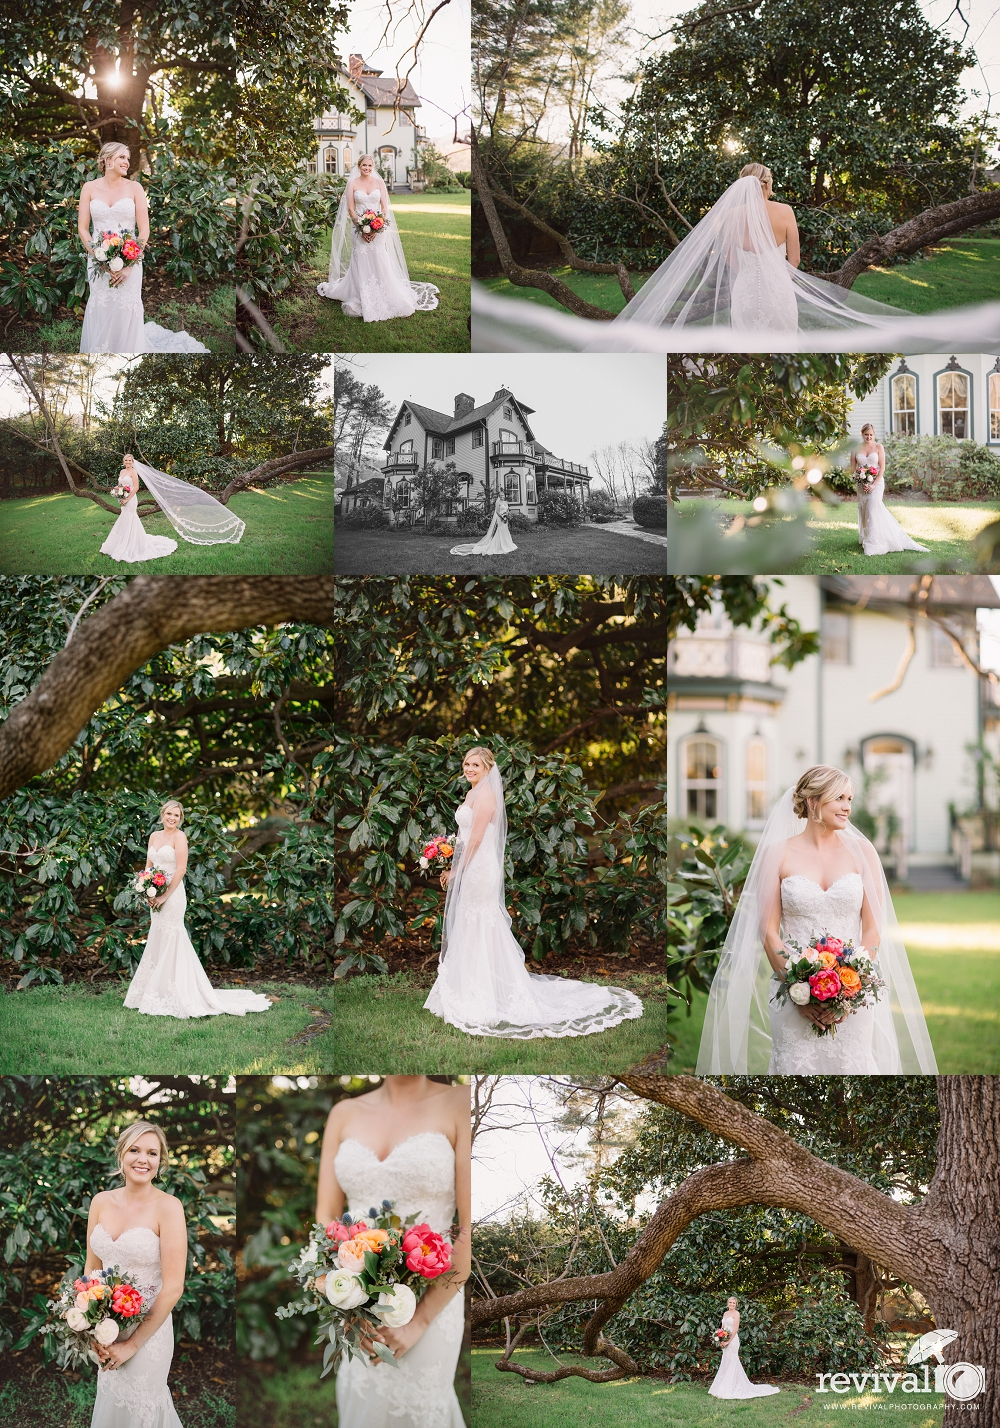 Meghan's Bridal Session at Mountain Magnola Inn, Hot Springs NC by Revival Photography